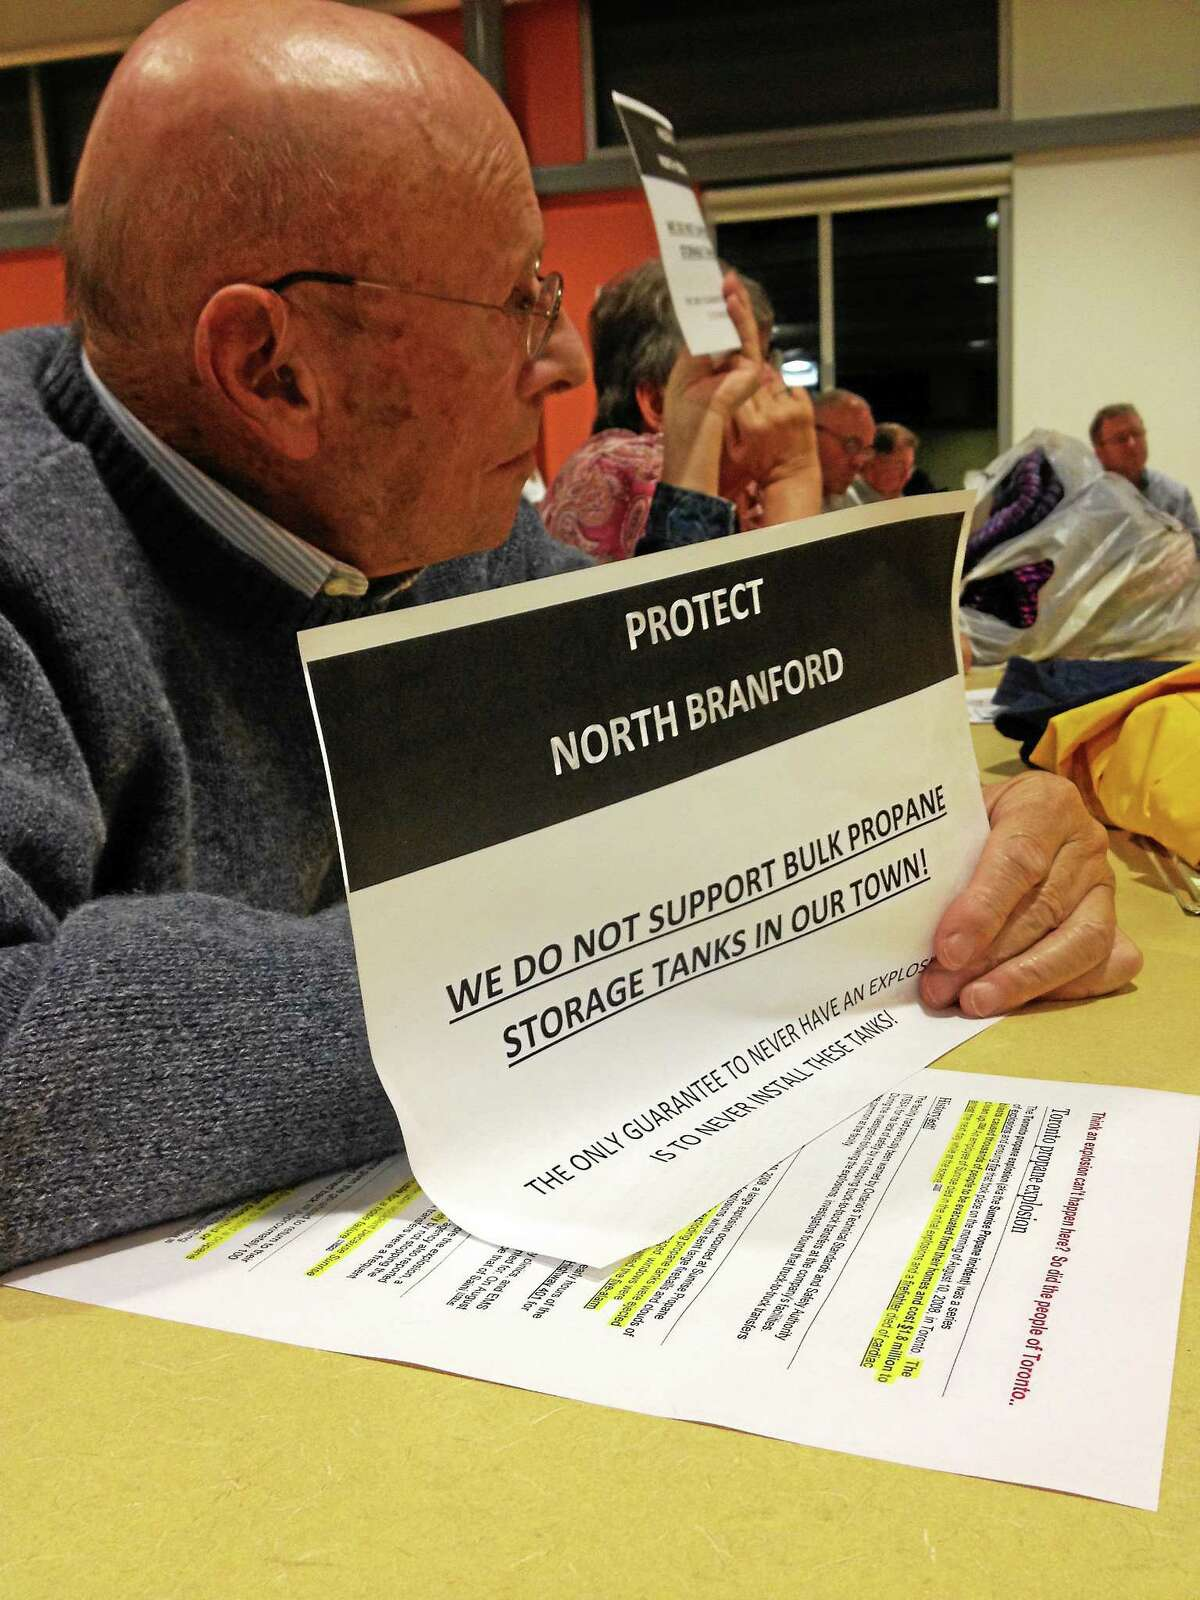 North Branford resident Bob van Marx holds a sign in protest at a Planning and Zoning meeting to discuss the J.J. Sullivan's proposed propane facility.